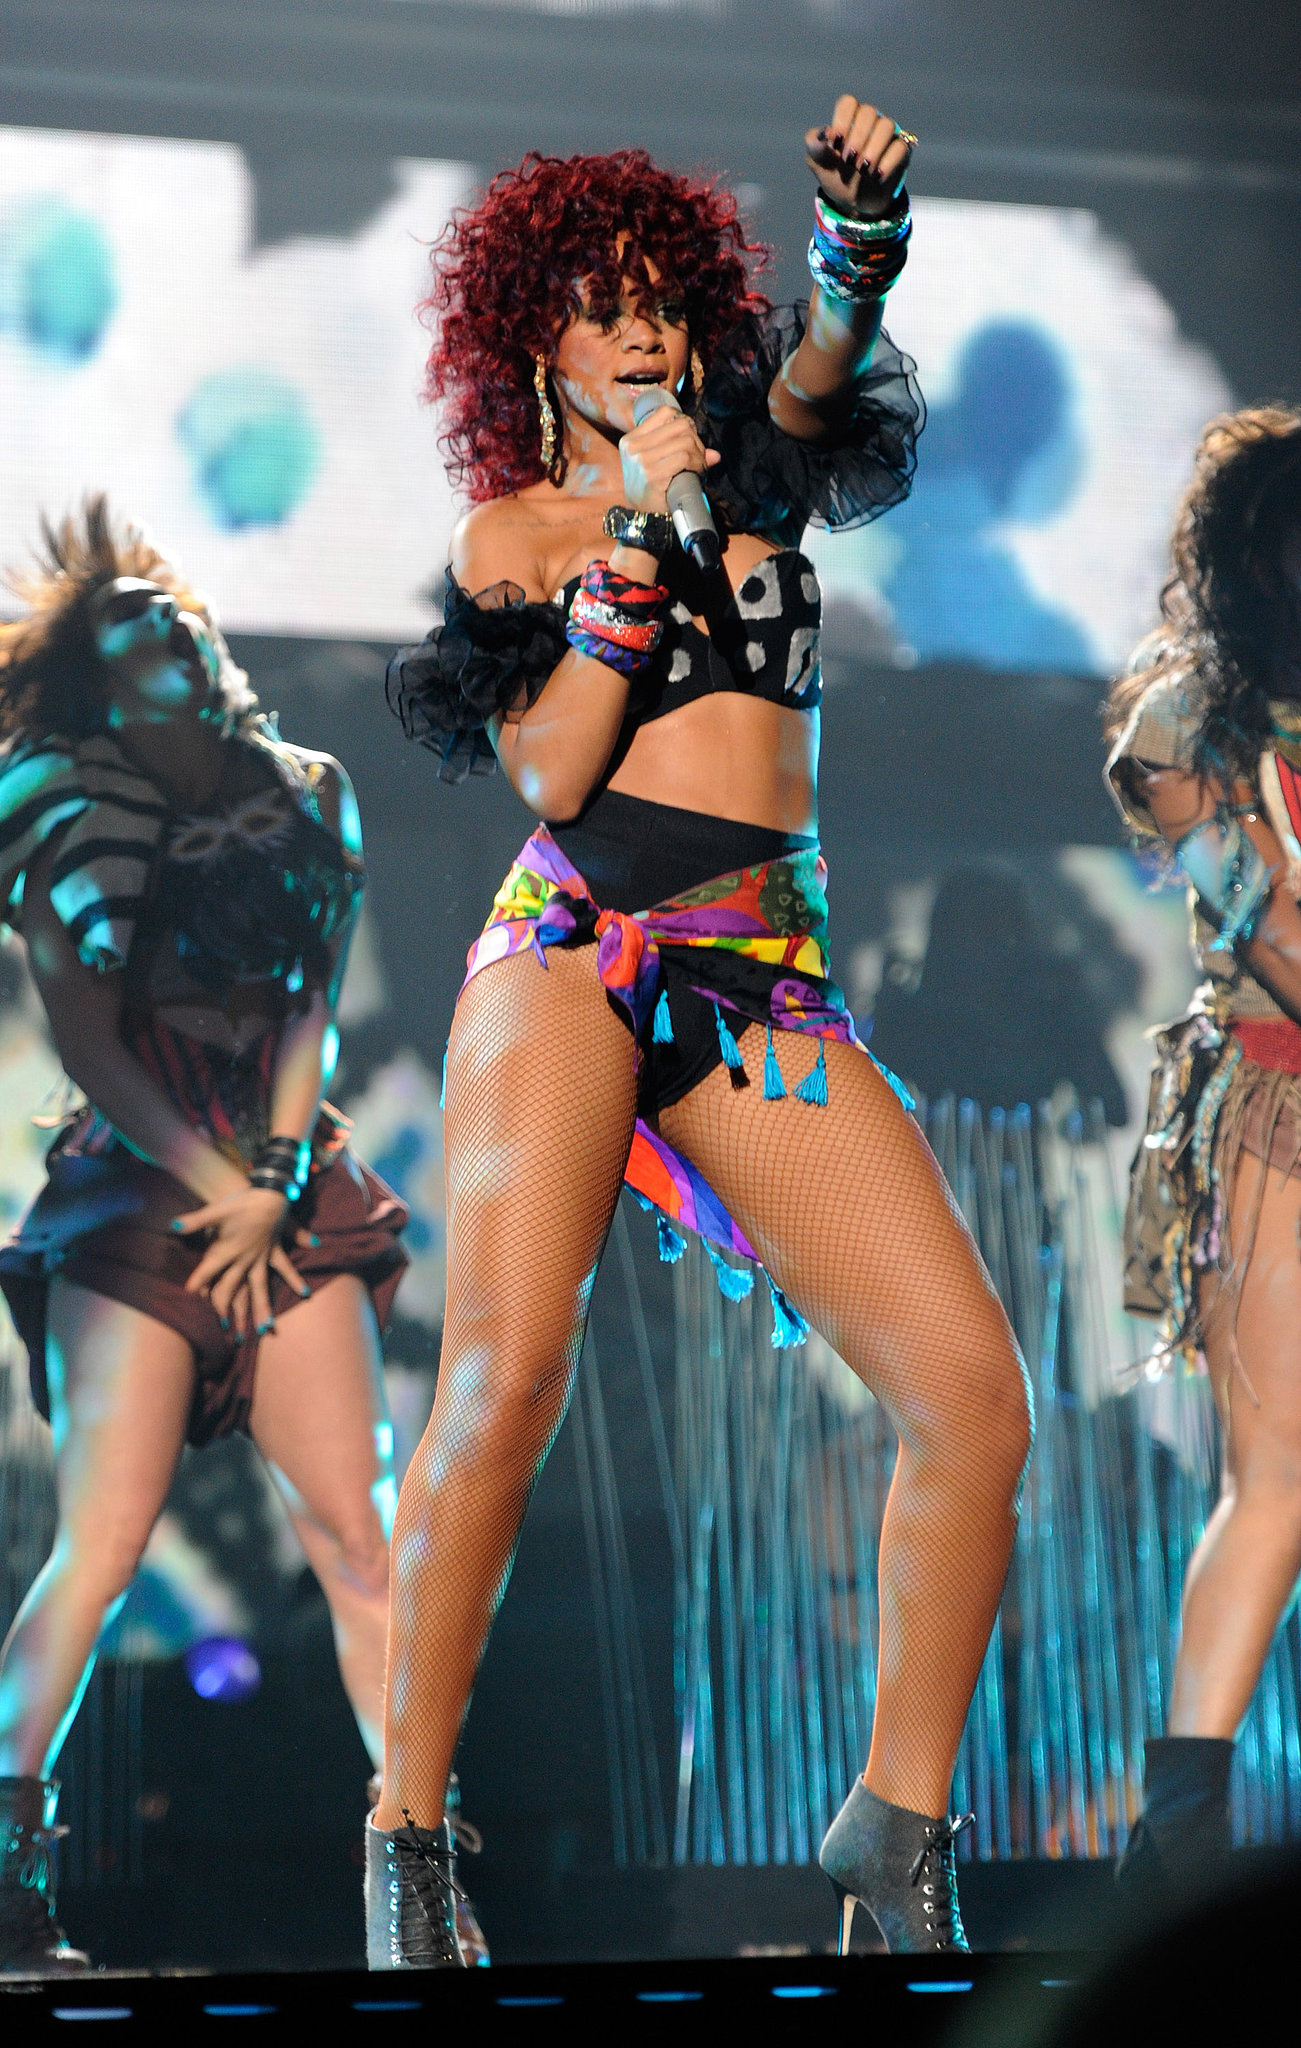 Rihanna was sexy on stage in 2010.